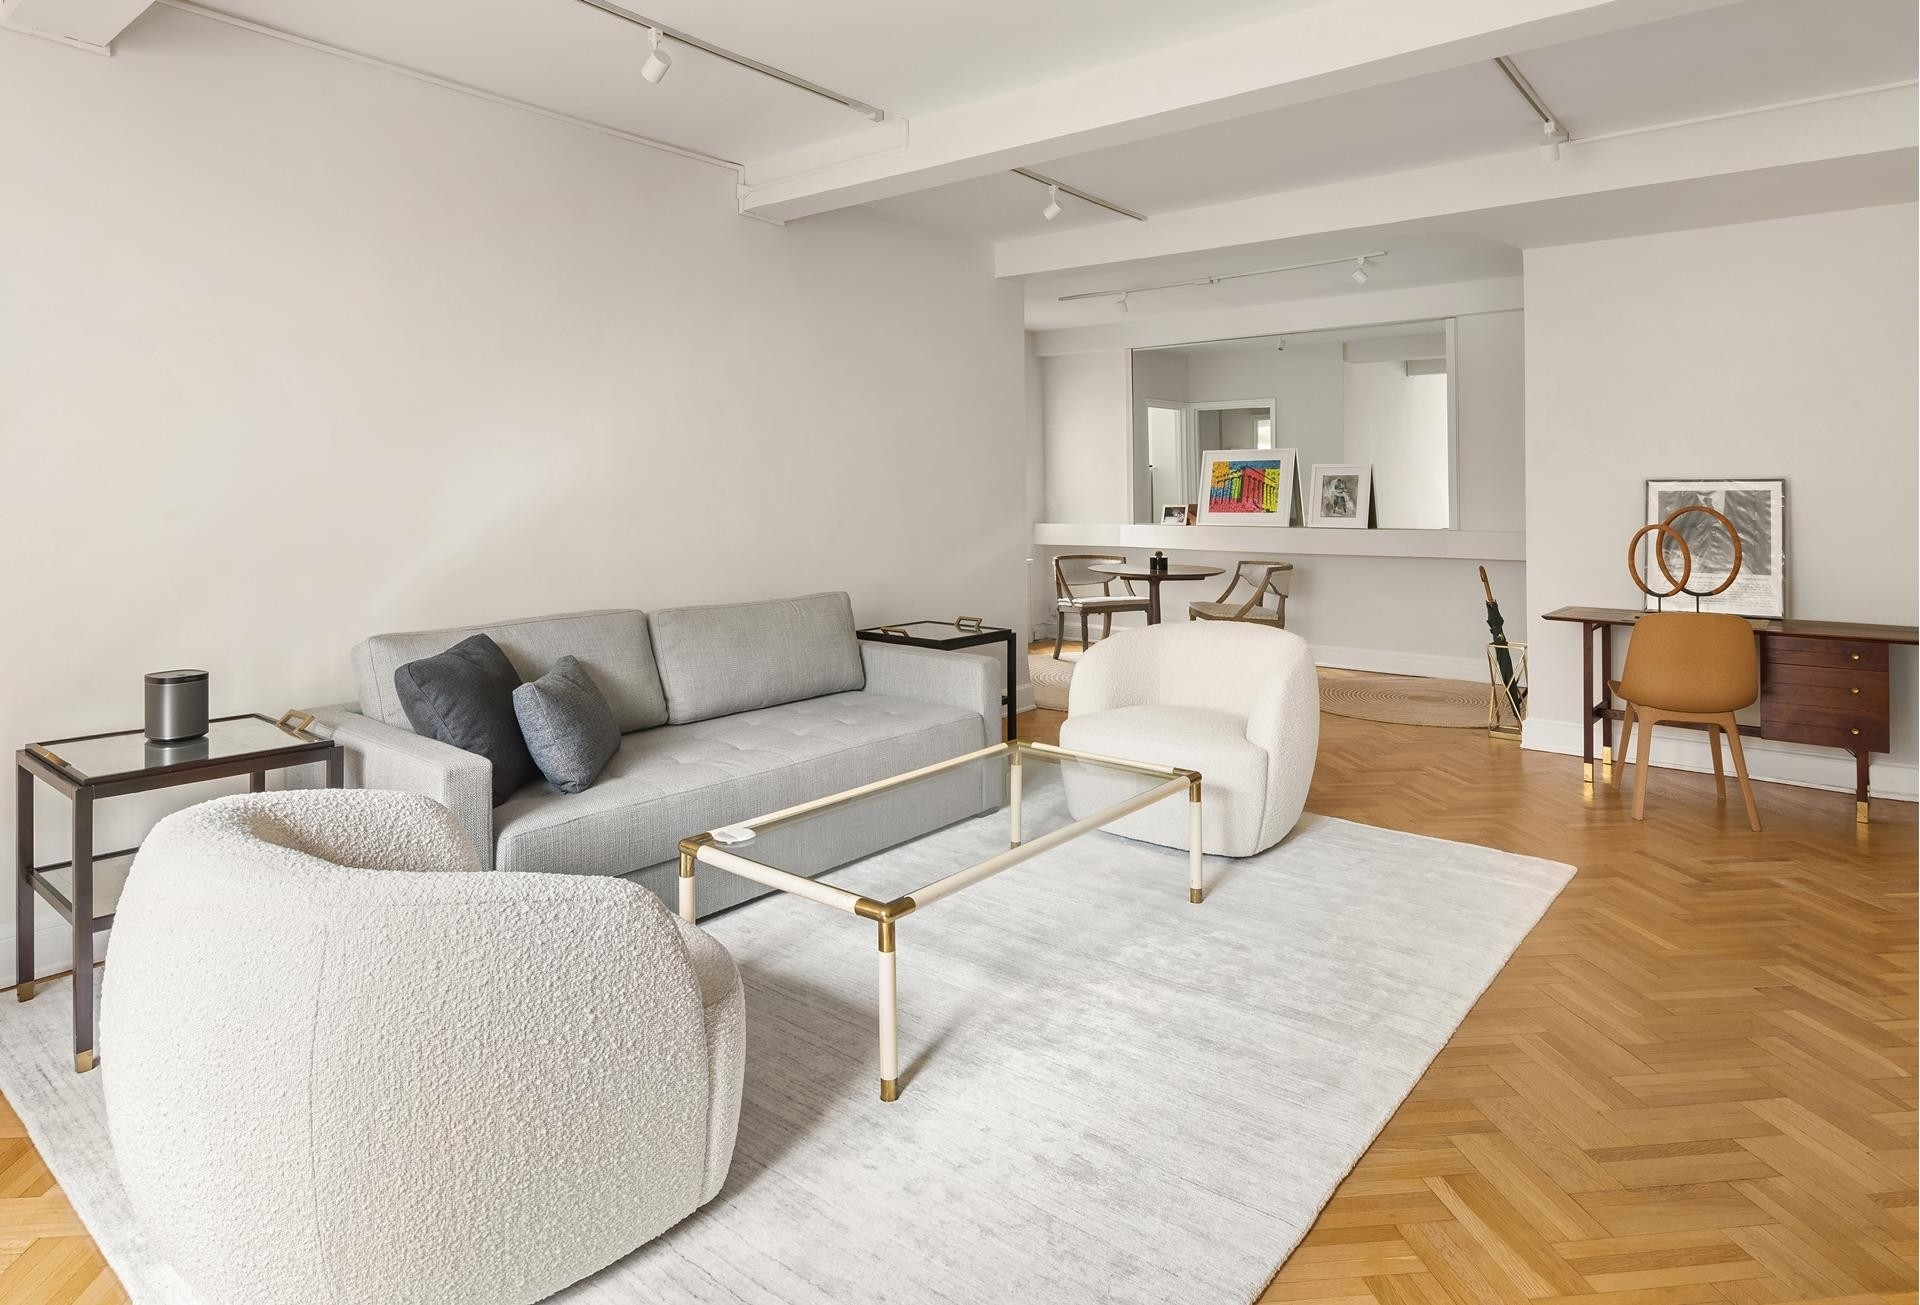 Condominium at MADISON-PARK 67 ASS, 44 East 67th St, 6D Lenox Hill, New York, NY 10021